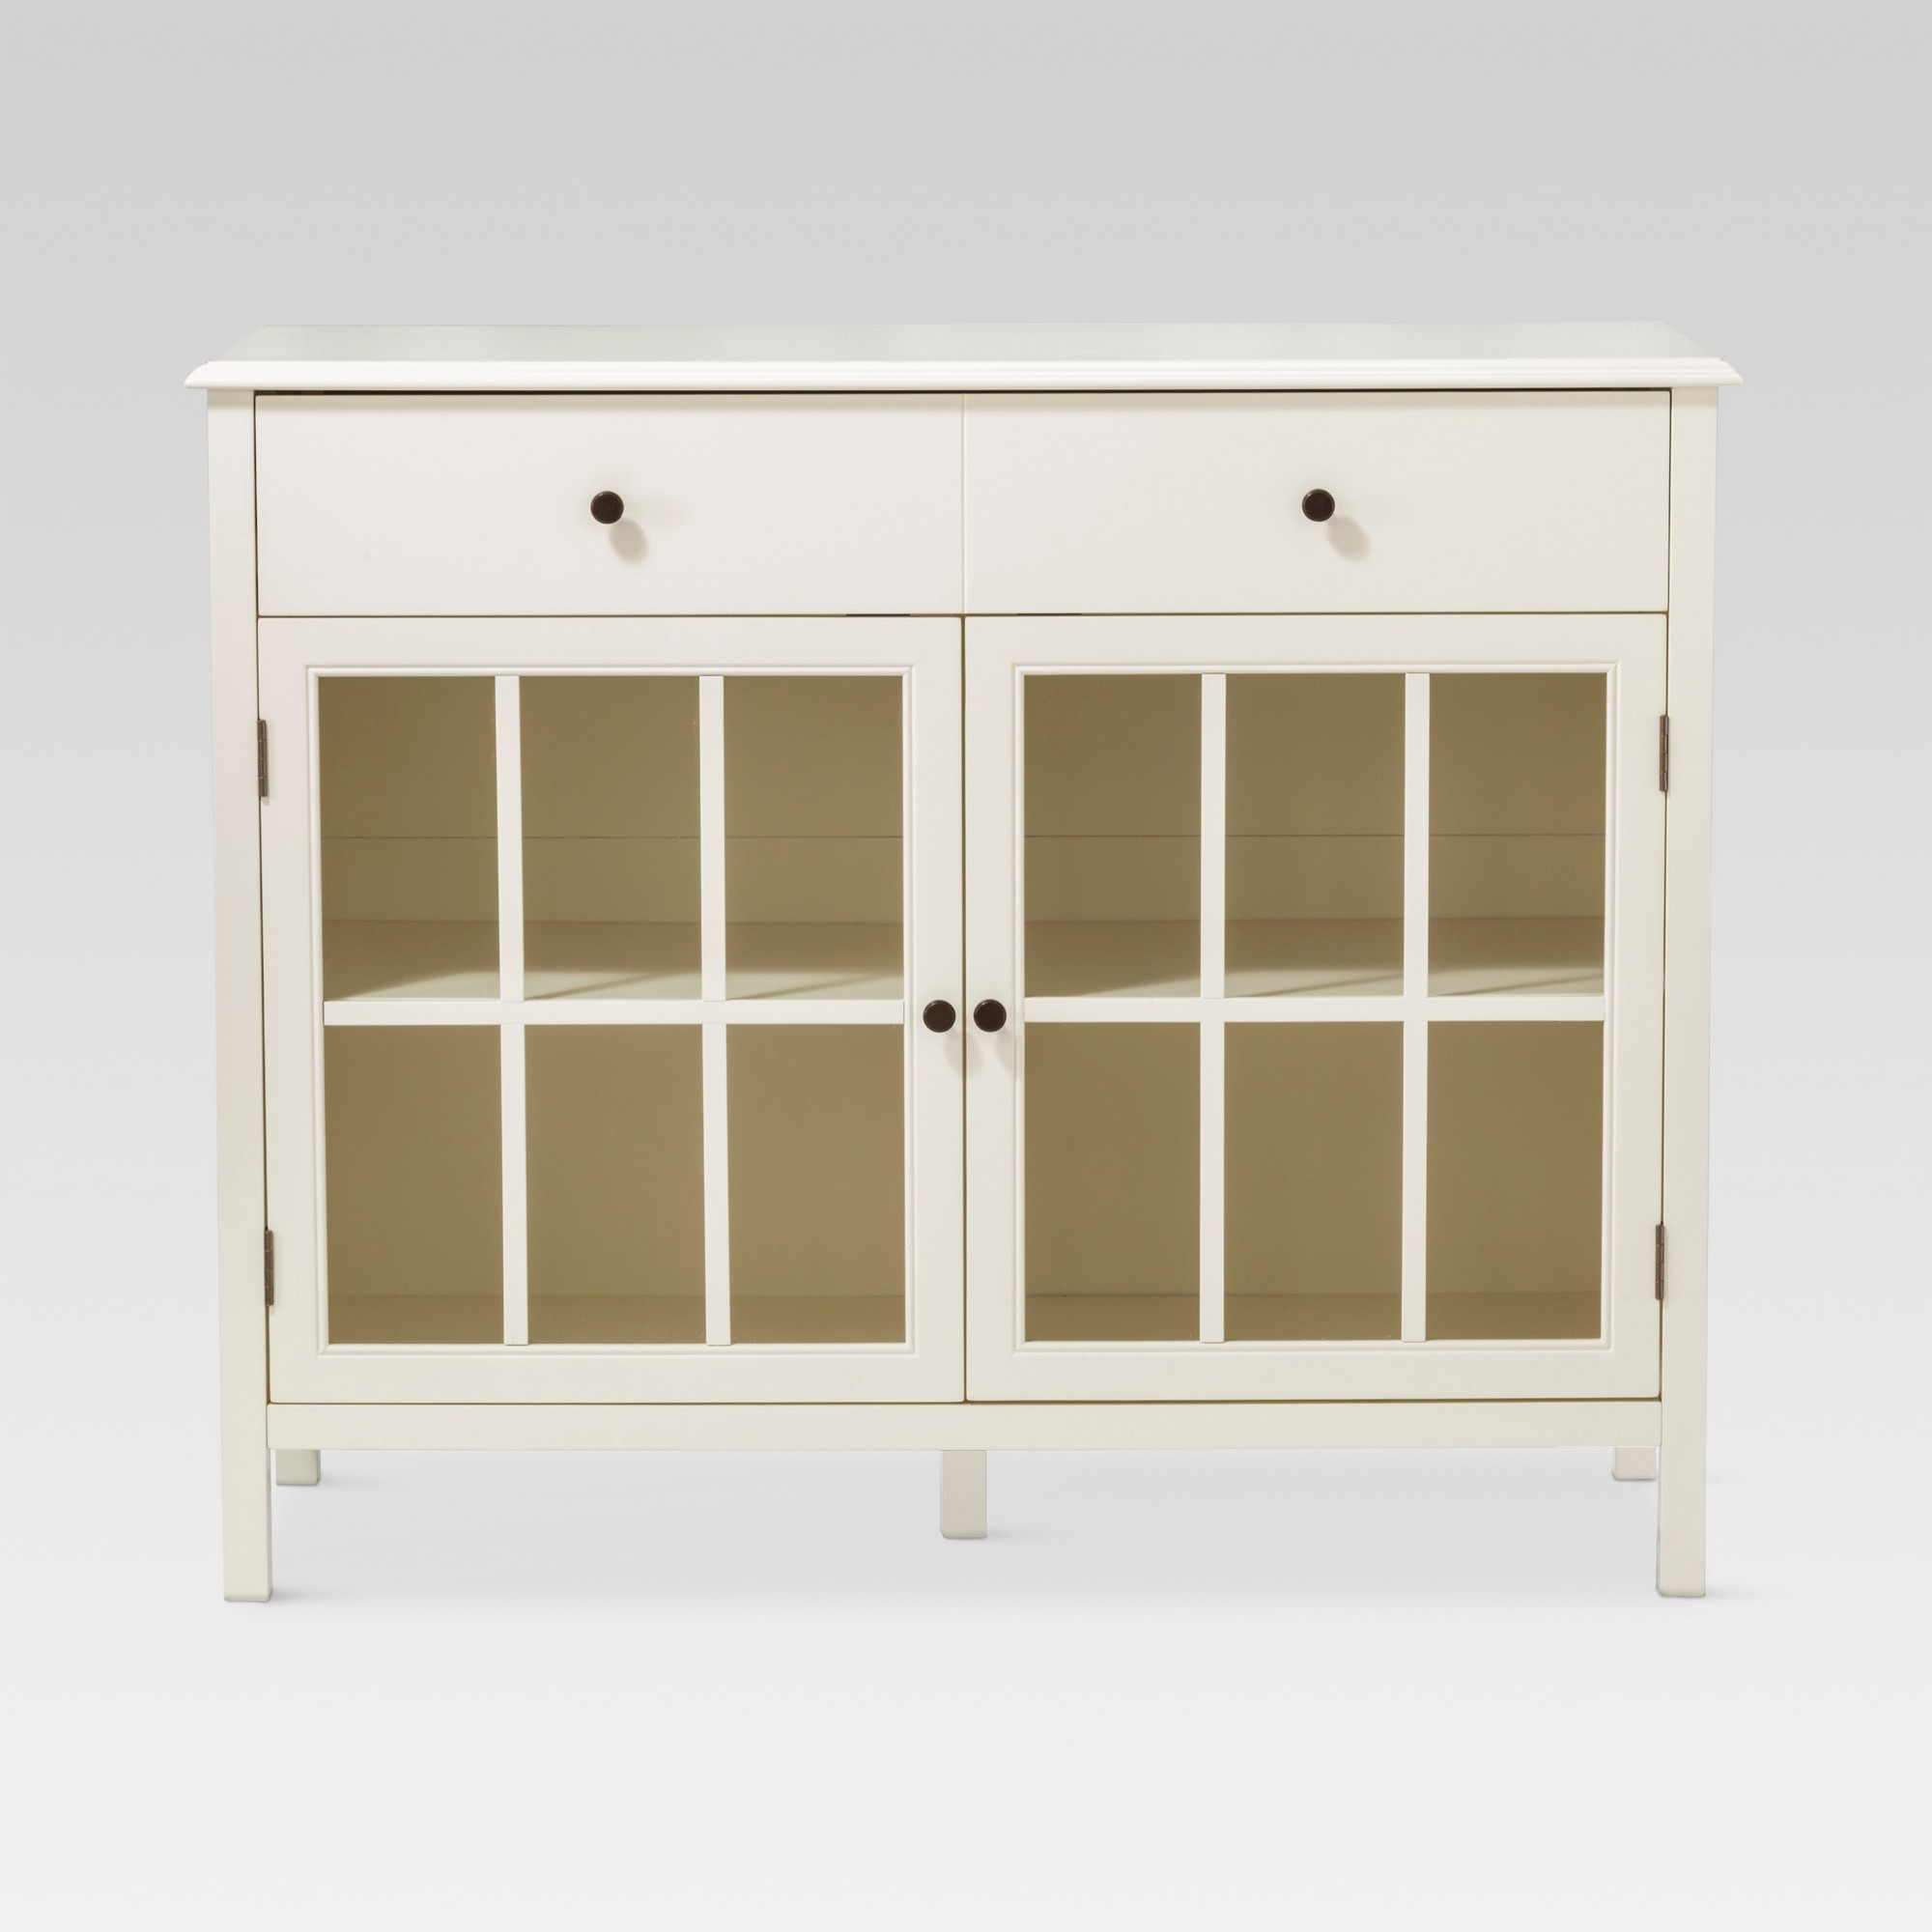 windham door accent buffet cabinet with shelves off white threshold table wine pier lamps small fold side round decorator tablecloths metal furniture legs modern living room floor